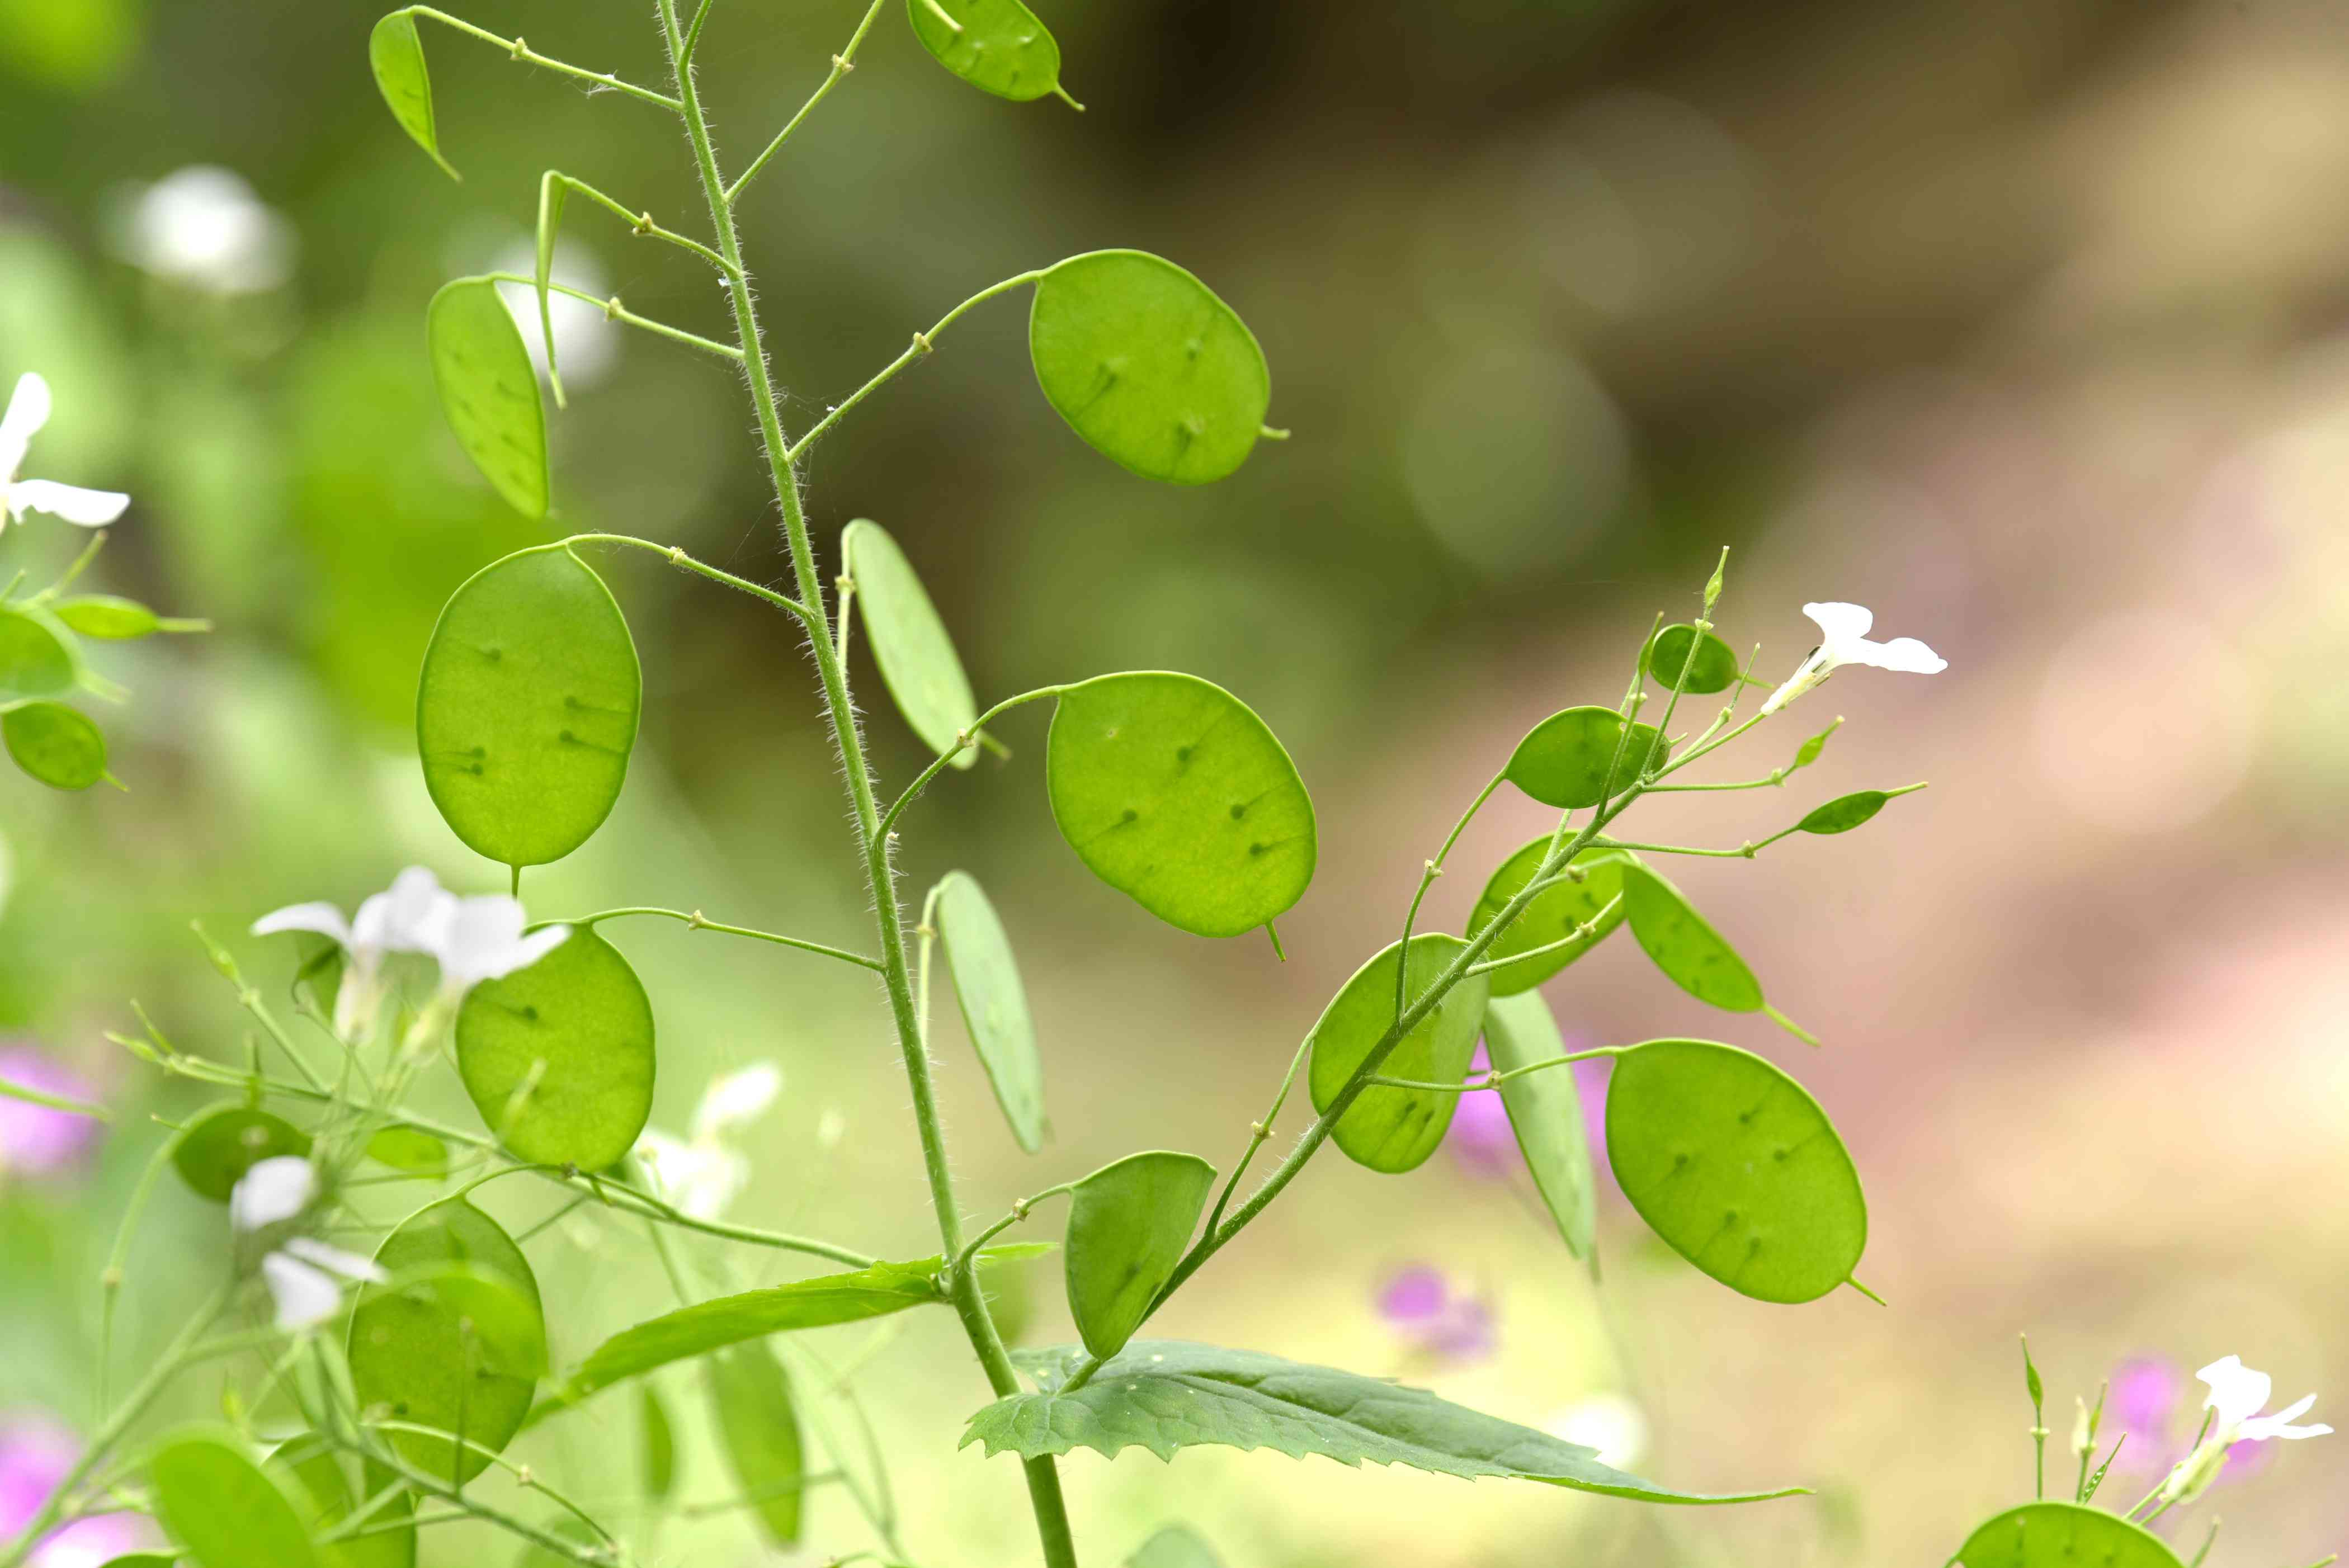 Lunaria plant with round green leaves on thin stem and small white flowers